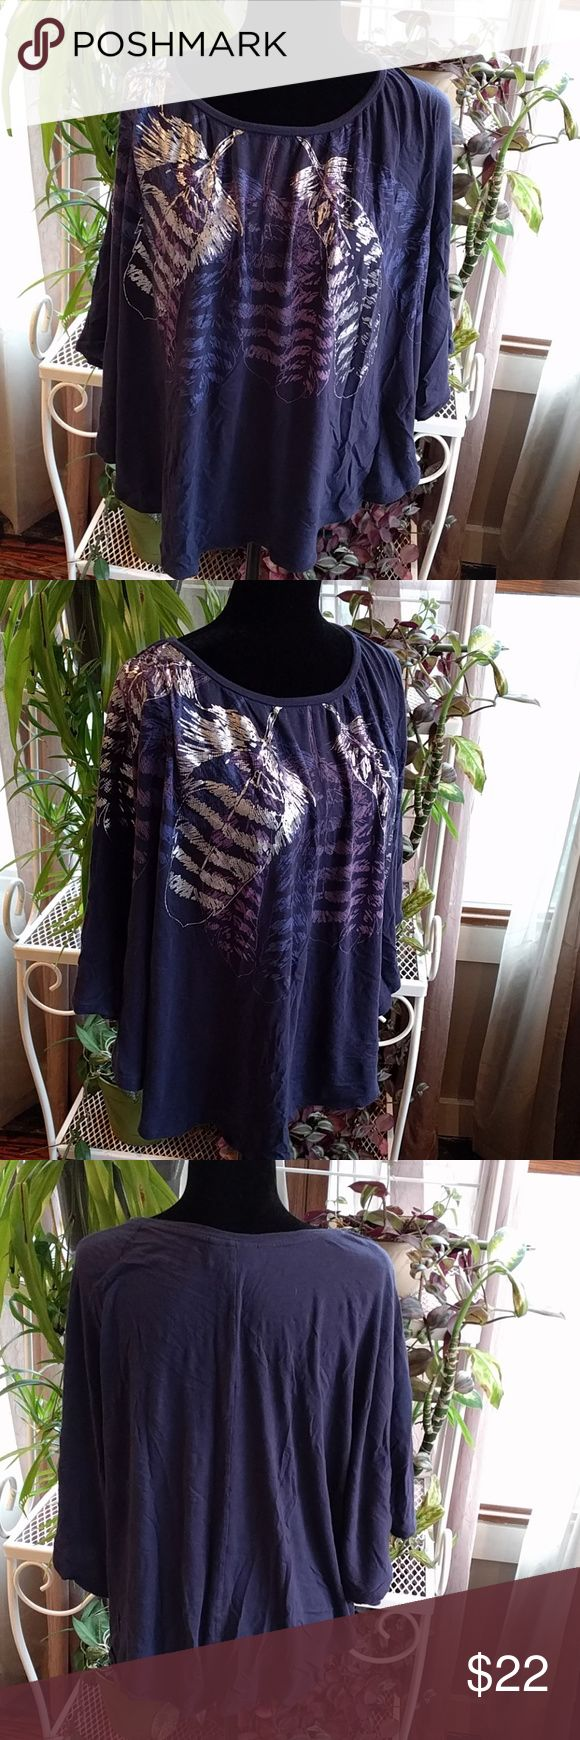 Plus size Batwing top Plus size  batwing style top  Fashion Bug  size 3 X Lavender blue metallic feather print Fashion Bug Tops